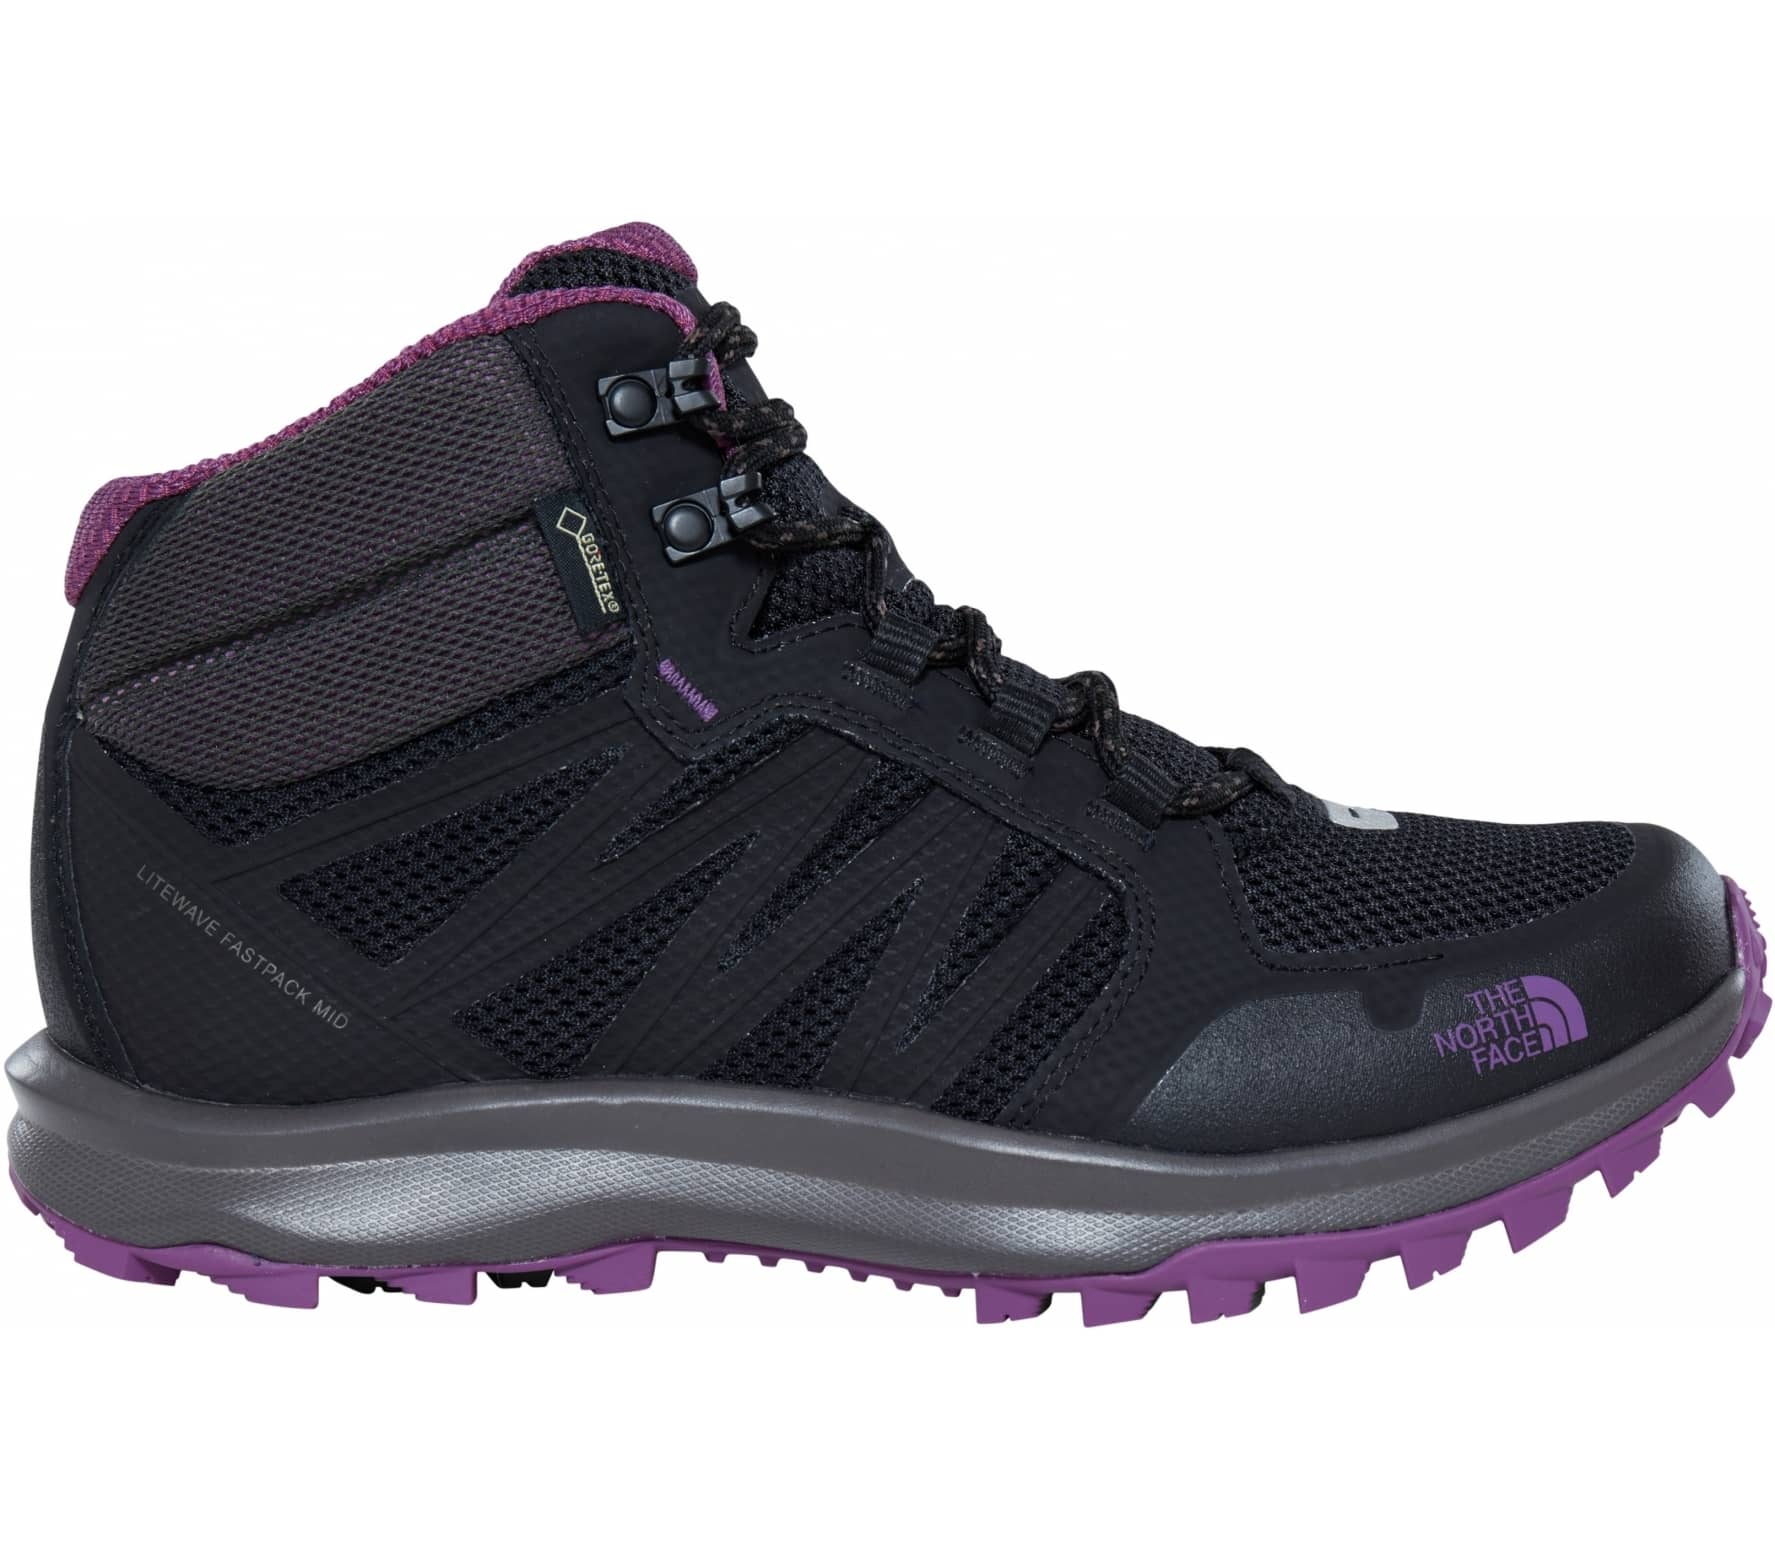 41e88f324 The North Face Litewave Fastpack Mid GTX women's hiking shoes Women